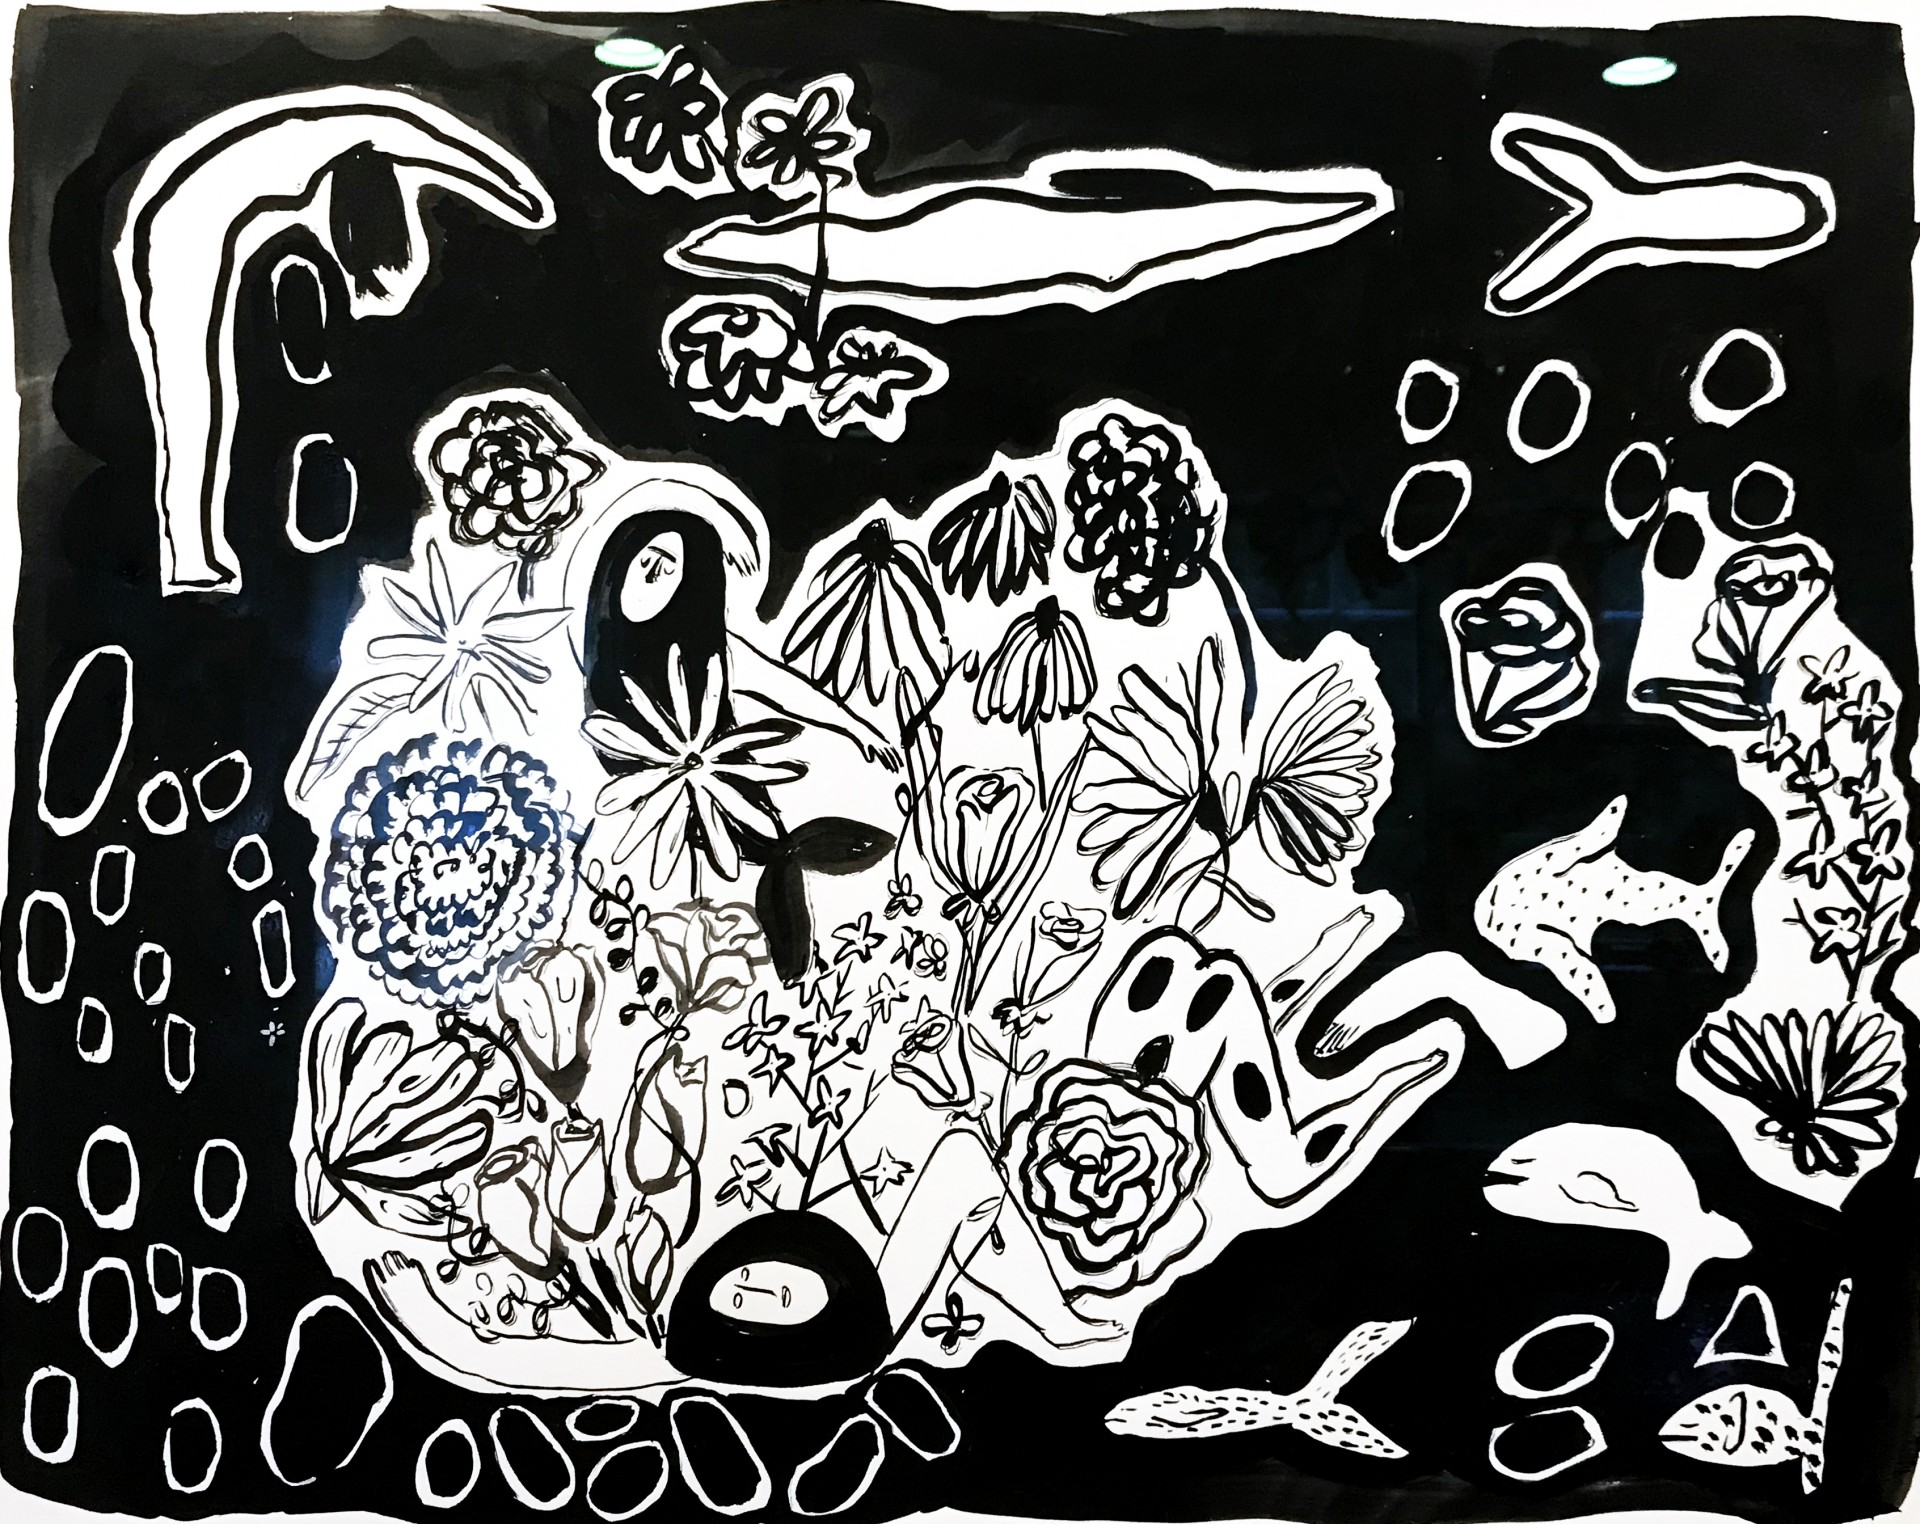 Central composition of flowers and figures. Figure transforming into fish. Elements of fish and circles on edge of painting